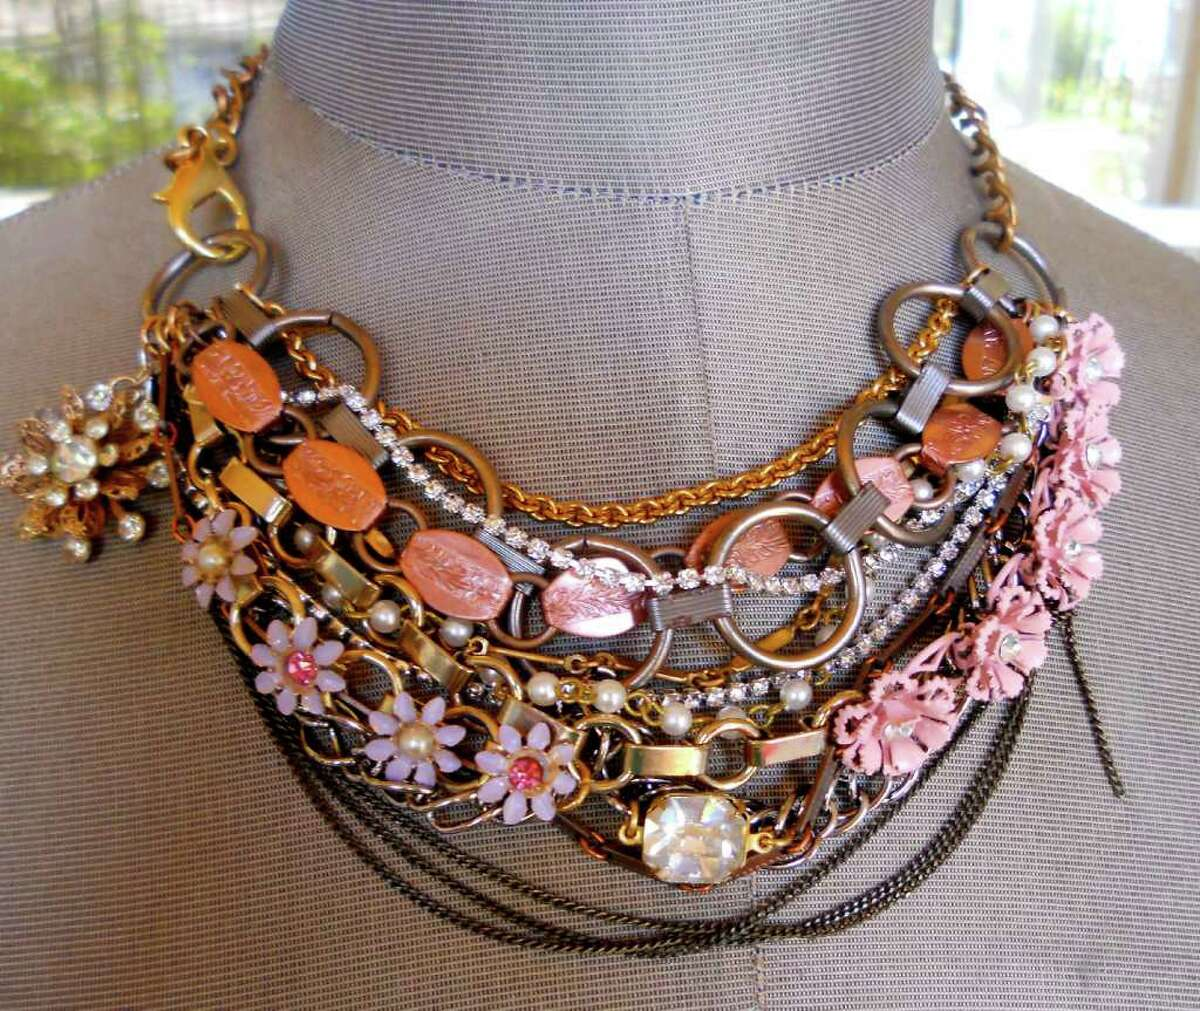 This undated photo courtesy of Alisa Hopper shows a necklace by Hopper. Hopper, of Roseville, Calif., refashions vintage costume jewelry into modern, wearable pieces. (AP Photo/Alisa Hopper)